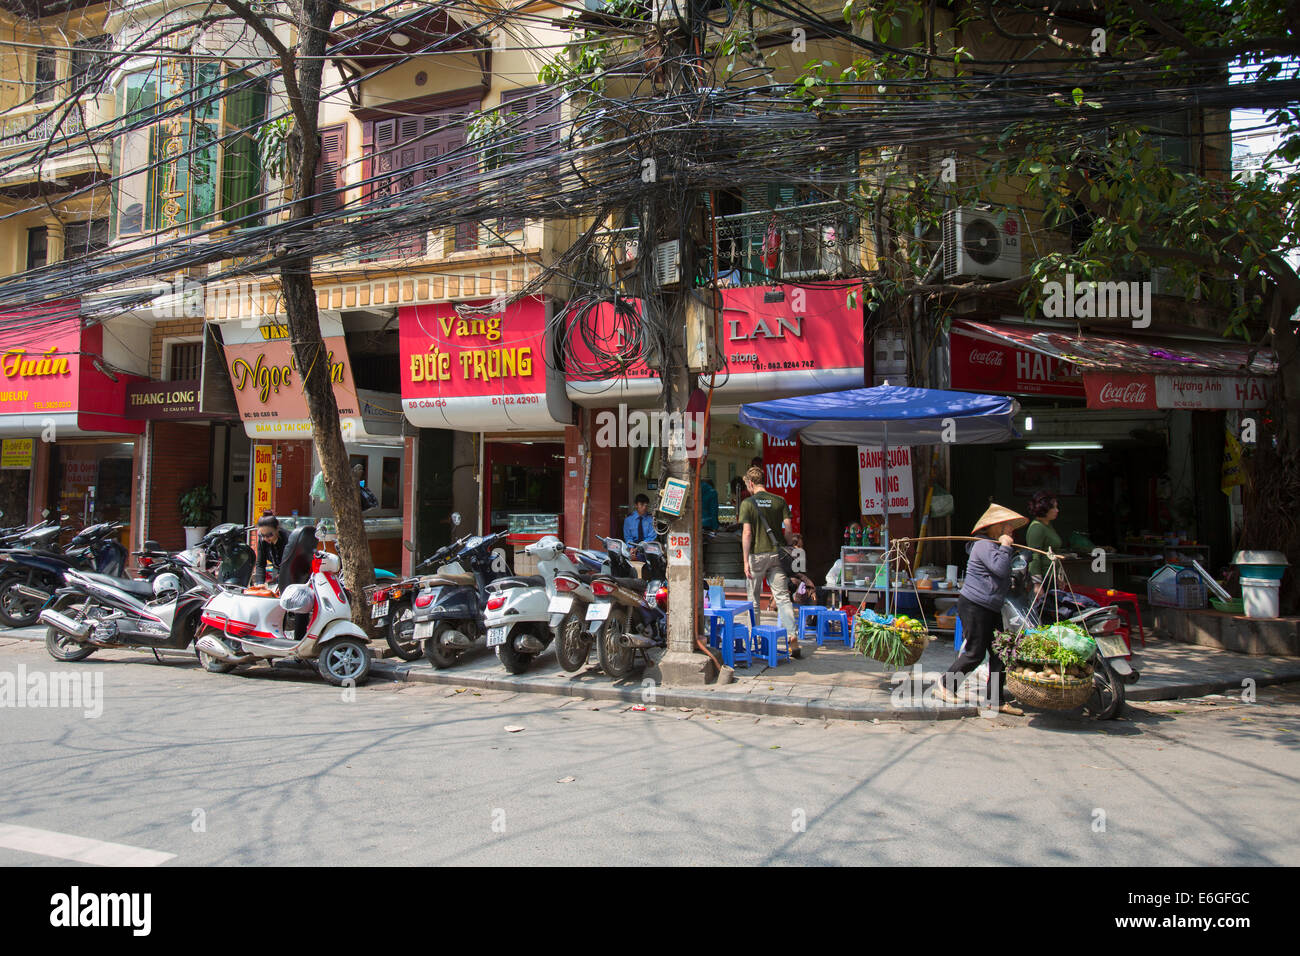 Tangled electrical wires in city of Hanoi, Vietnam - Stock Image